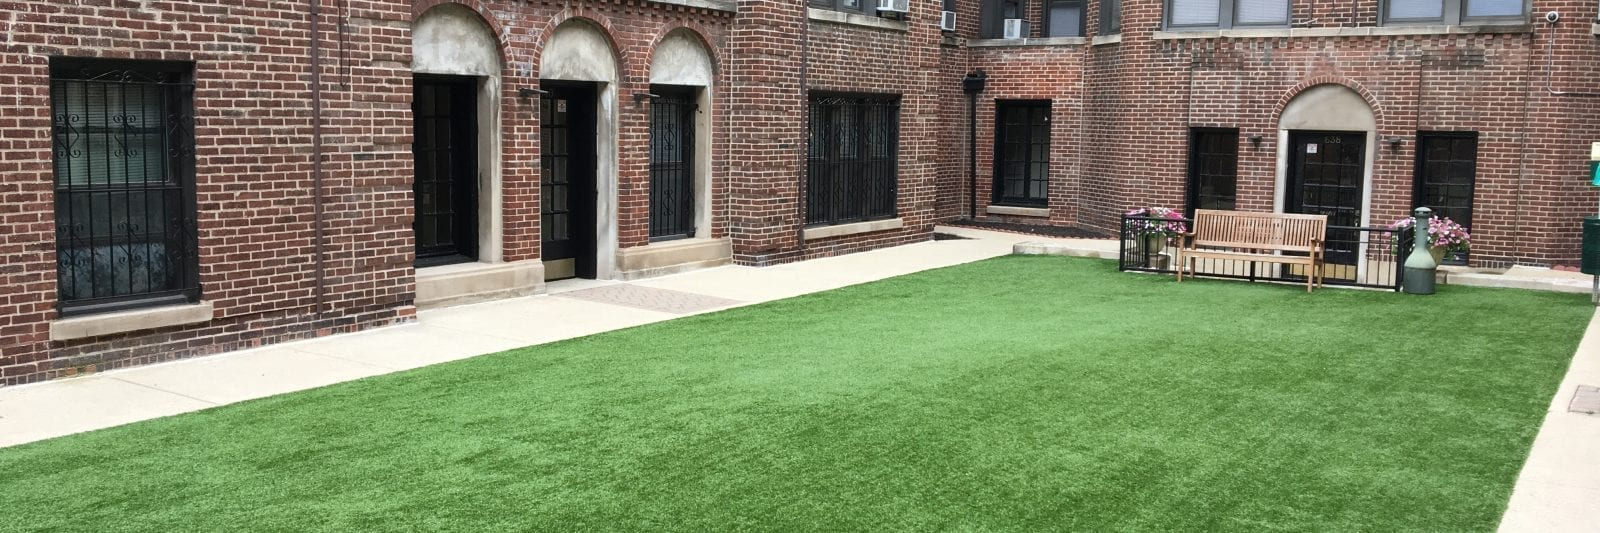 synthetic turf courtyard at office building